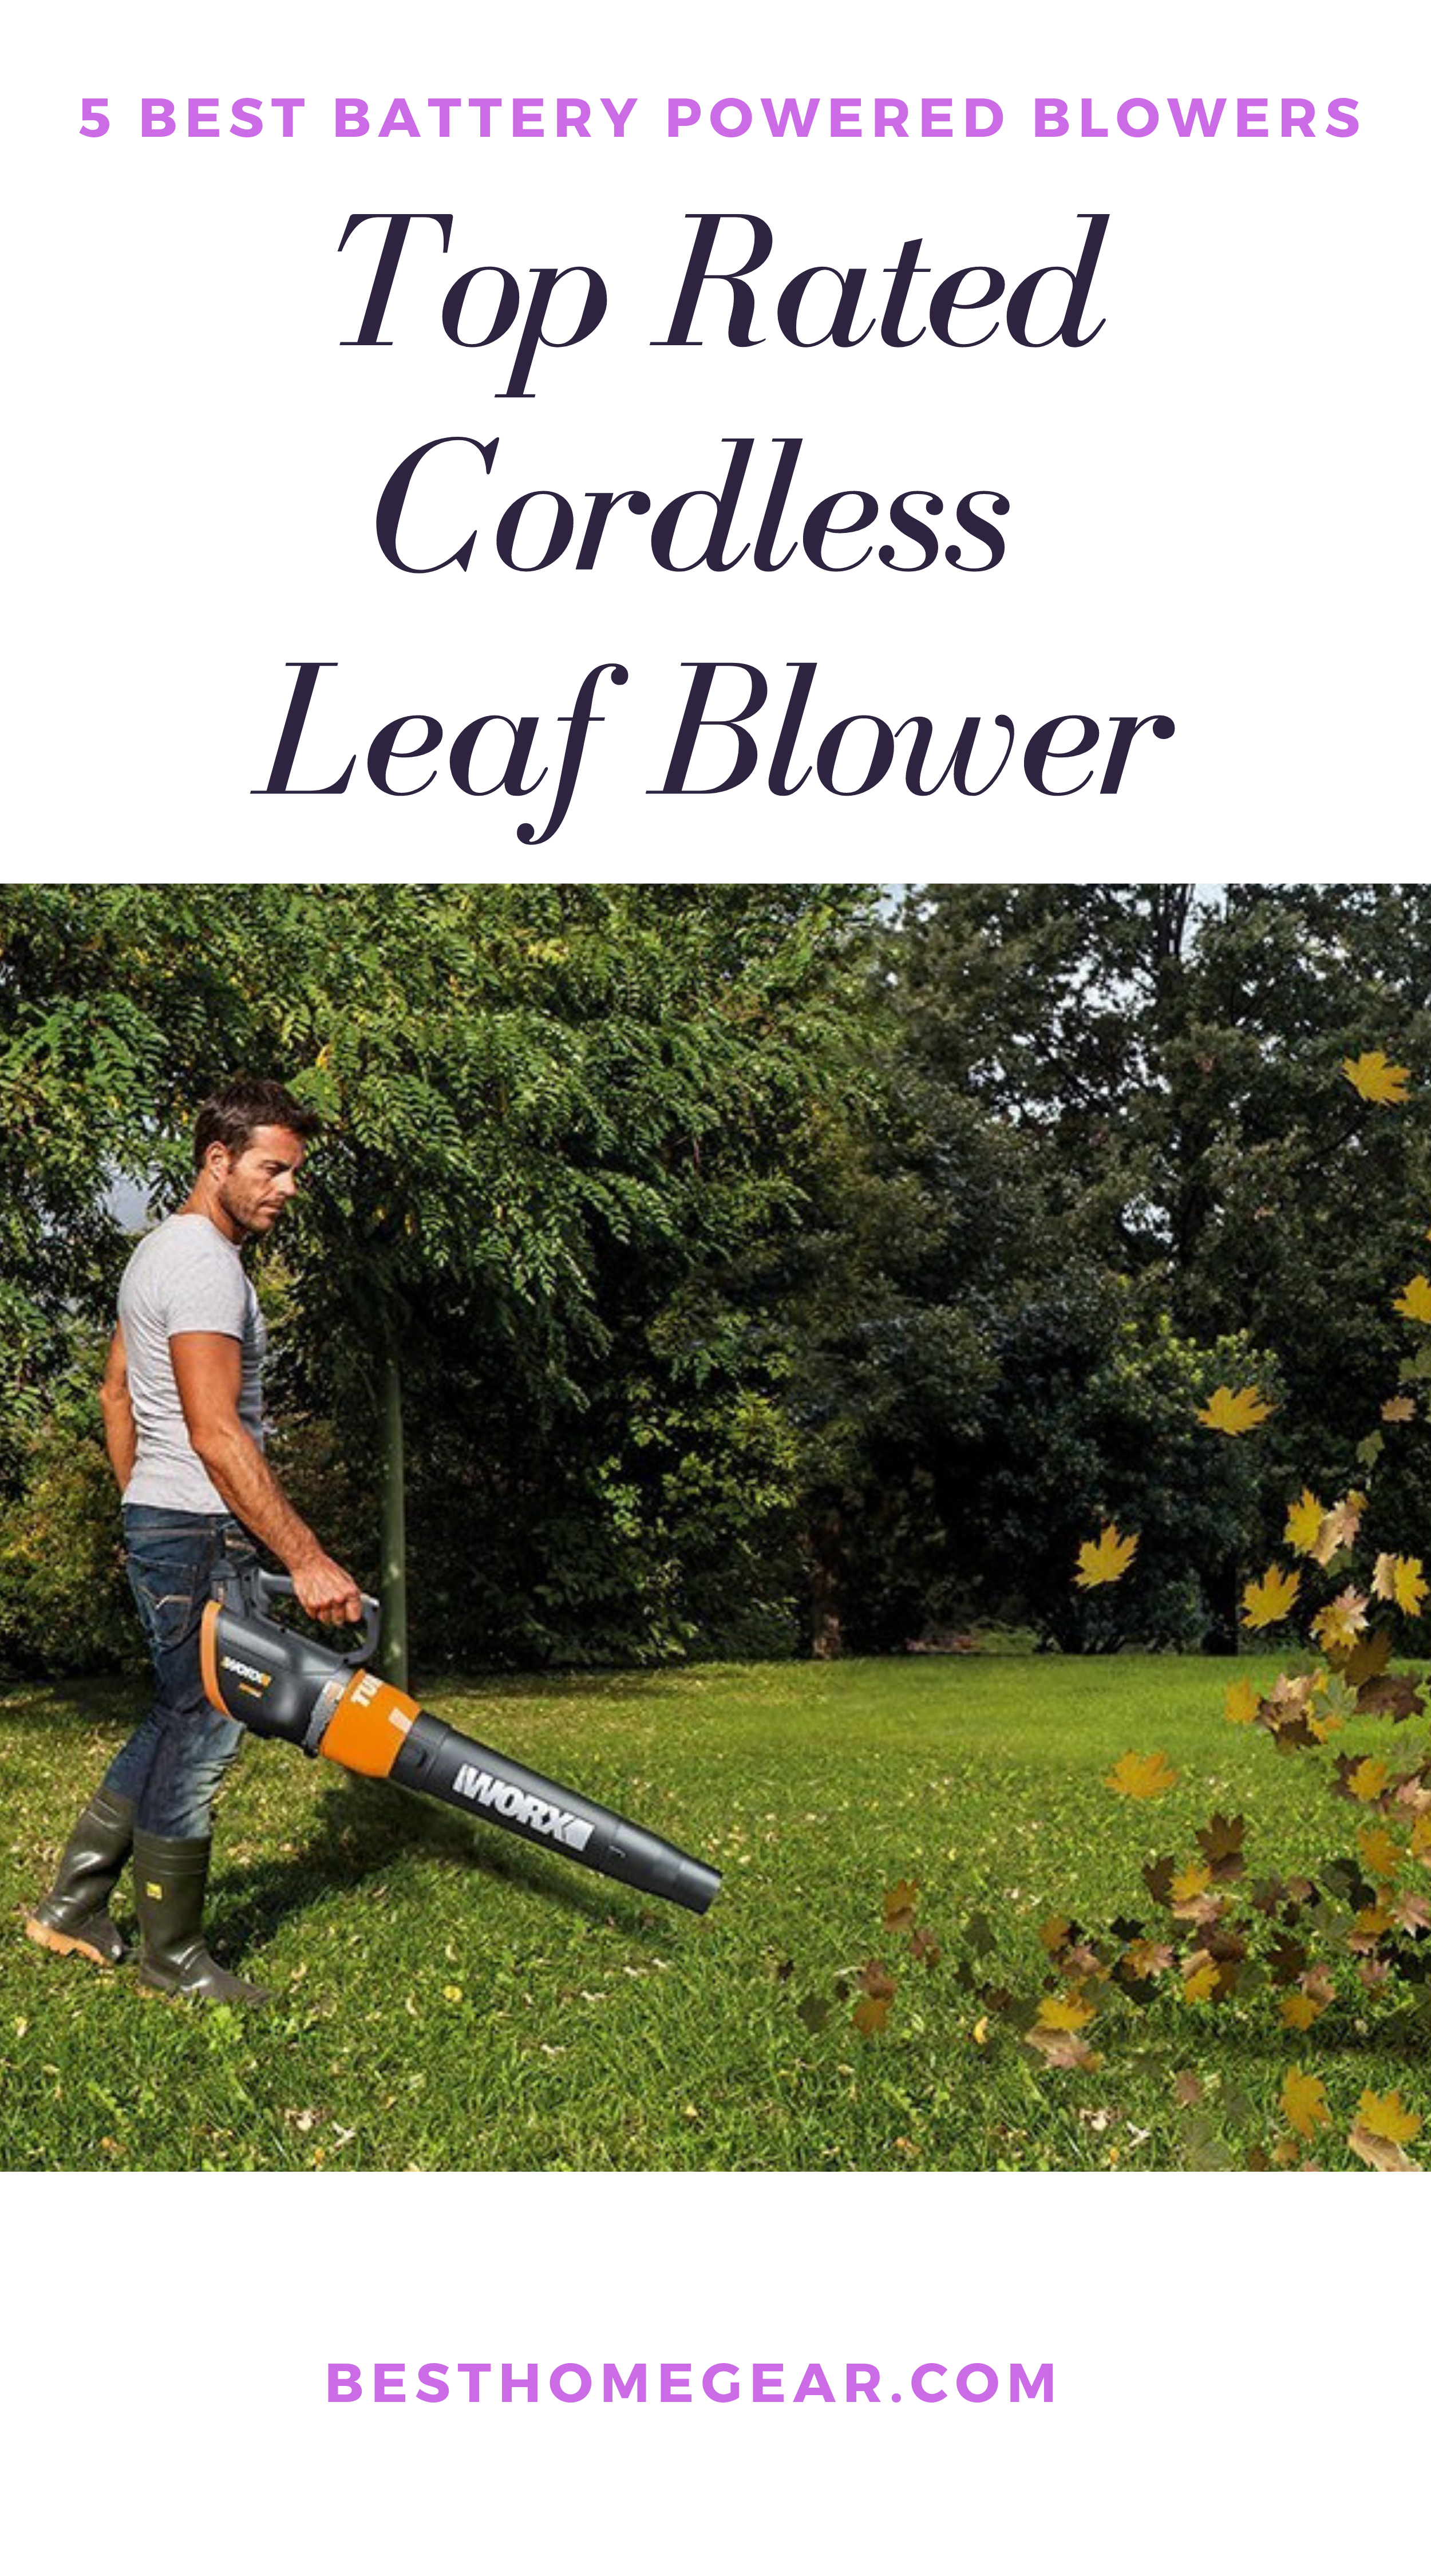 Best Cordless Leaf Blowers In 2020 Reviews Blowers Professional Landscaping Garden Care